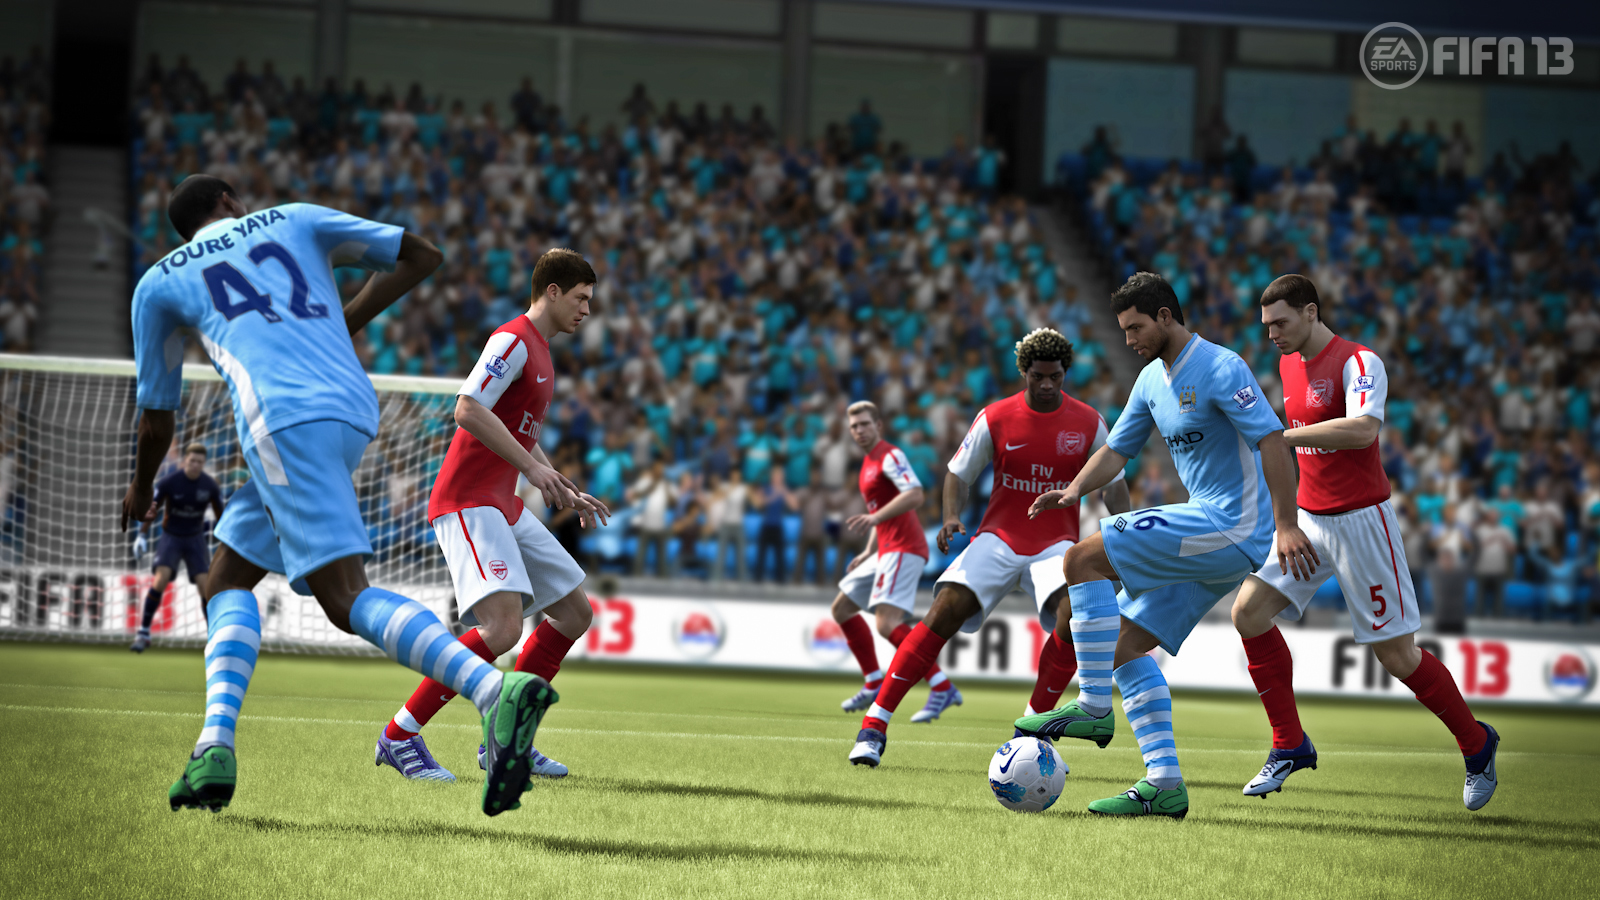 FIFA 13 | Aguero, Complete Dribbling